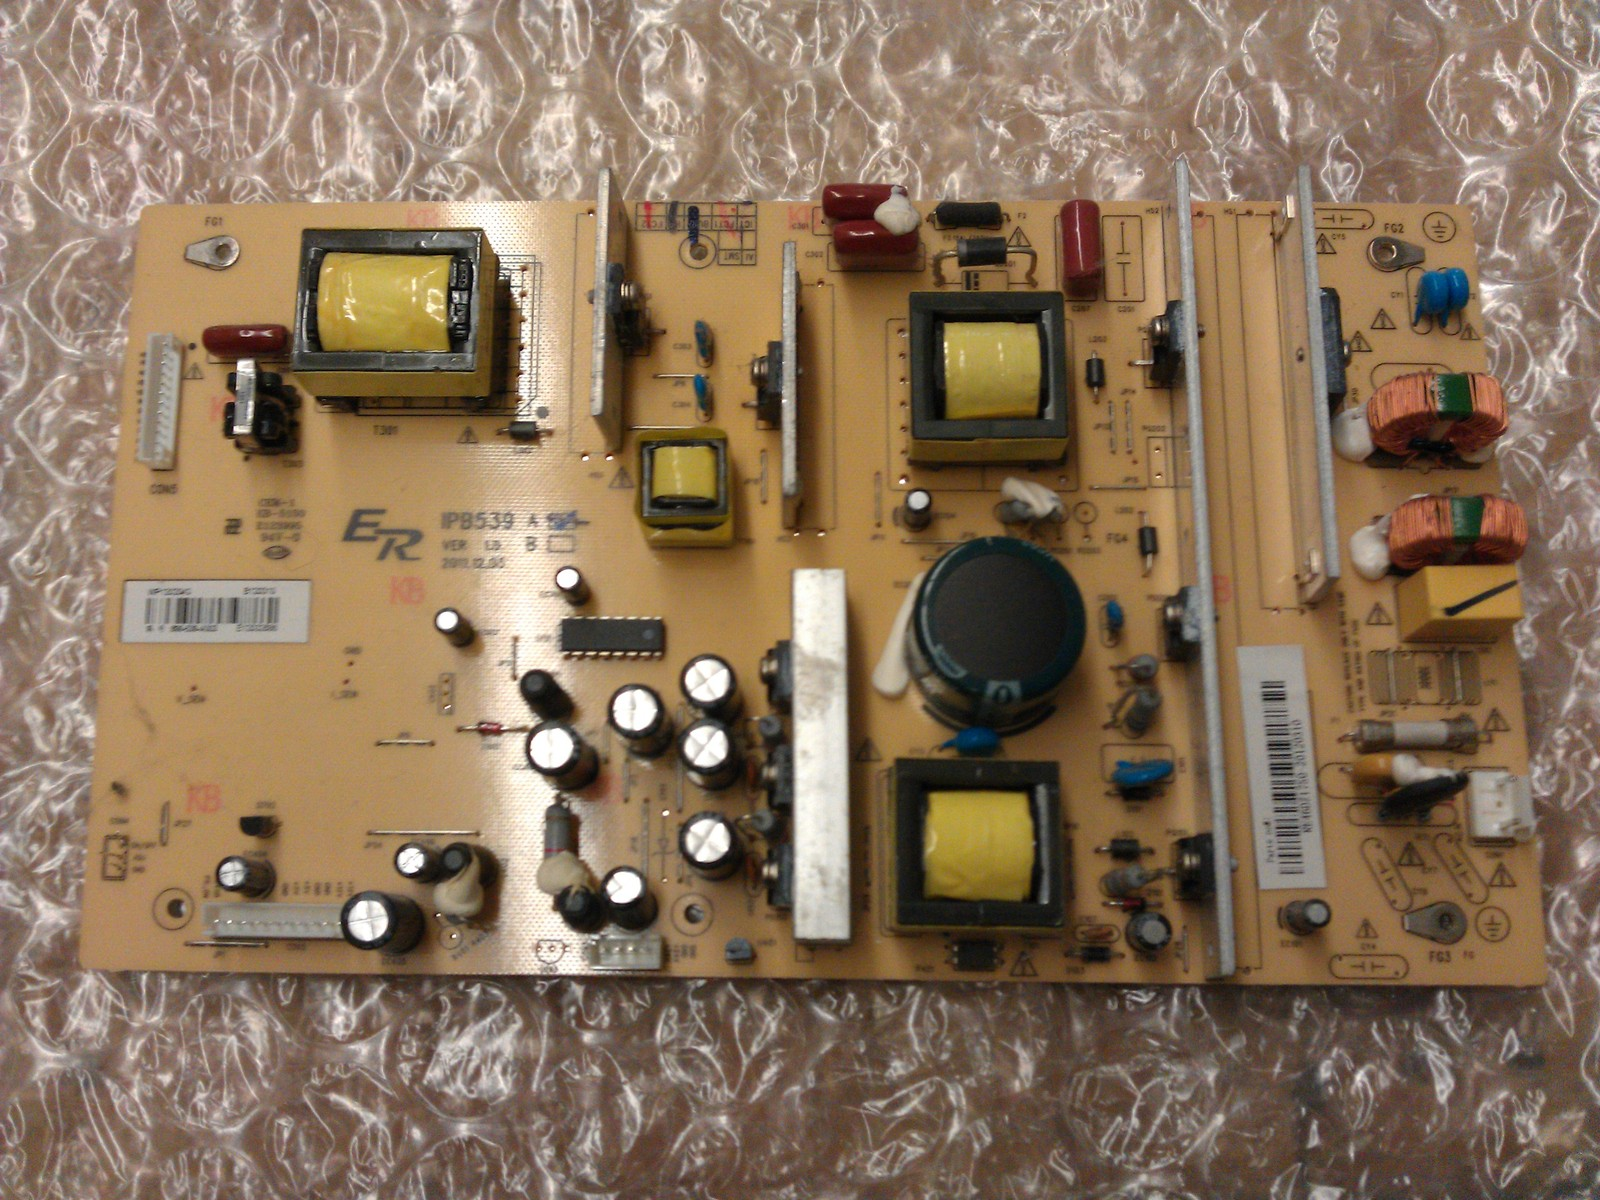 * RE46DZ1750 IPB539A Power Supply Board From Rca 39LB45RQ LCD TV - $53.95